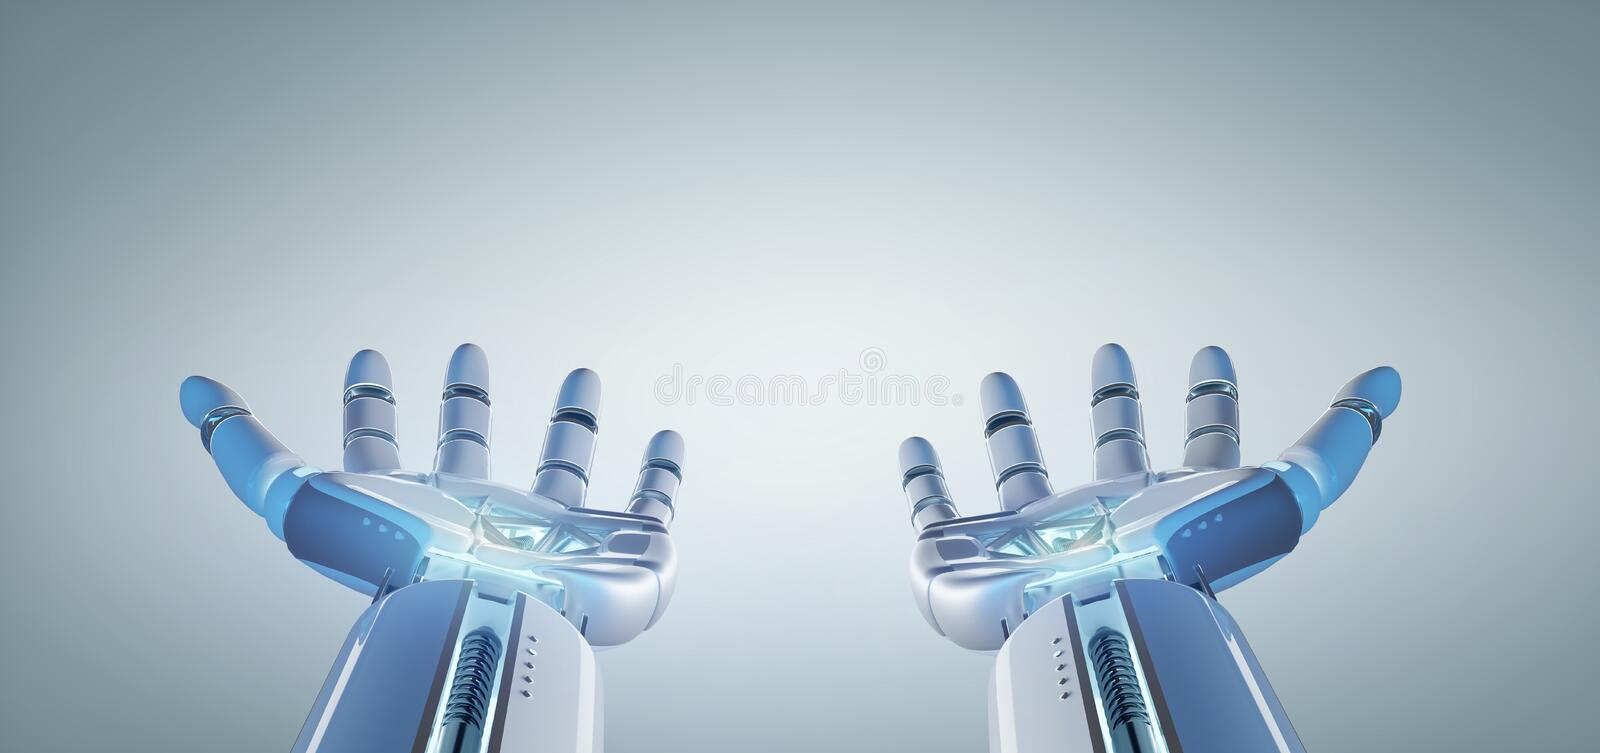 Cyborg robot hand on an uniform background 3d rendering stock illustration